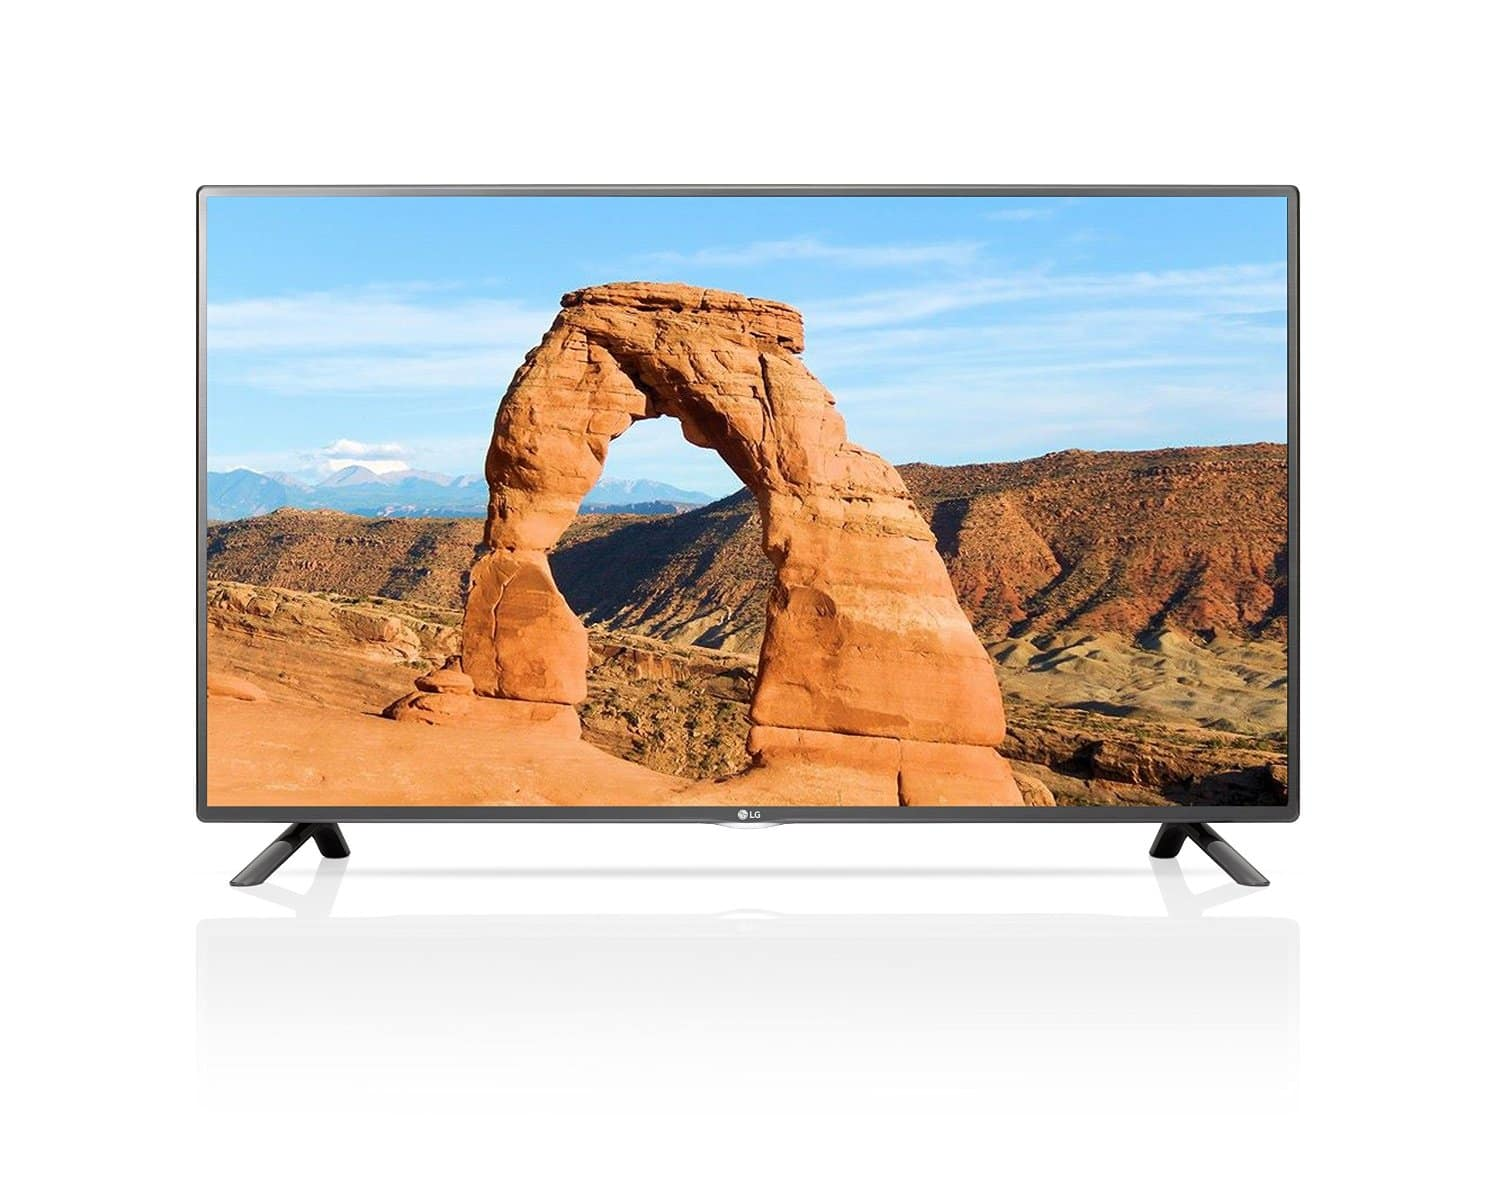 "Refurbished LG 55LF6000 55"" 1080p 120Hz Class LED HDTV $349.99 @ Walmart.com~Free Shipping Or Store Pick Up! Back From The Dead AGAIN!"